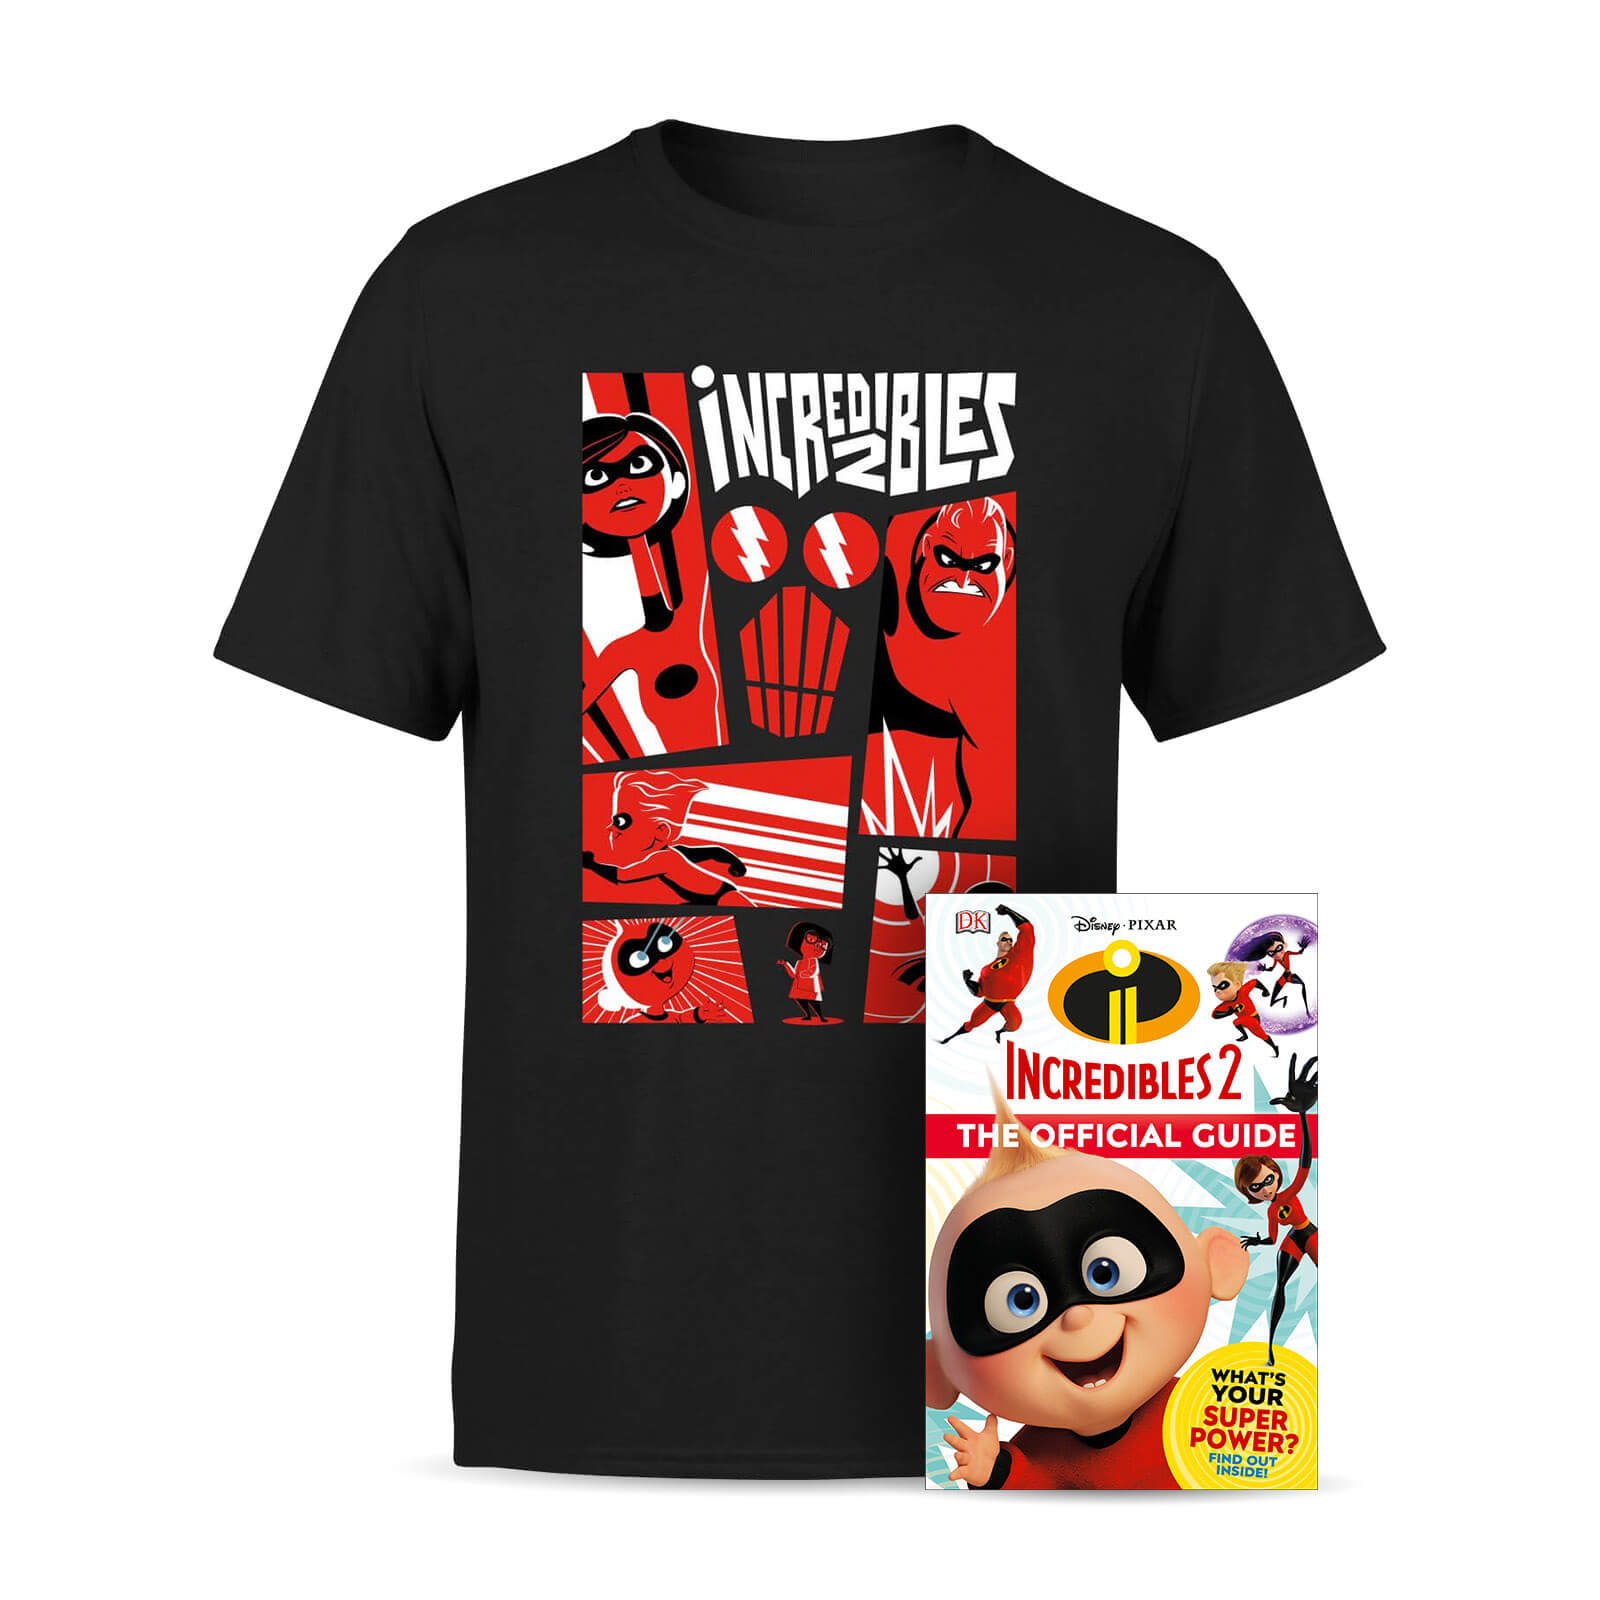 Disney Pixar The Incredibles Book Bundle